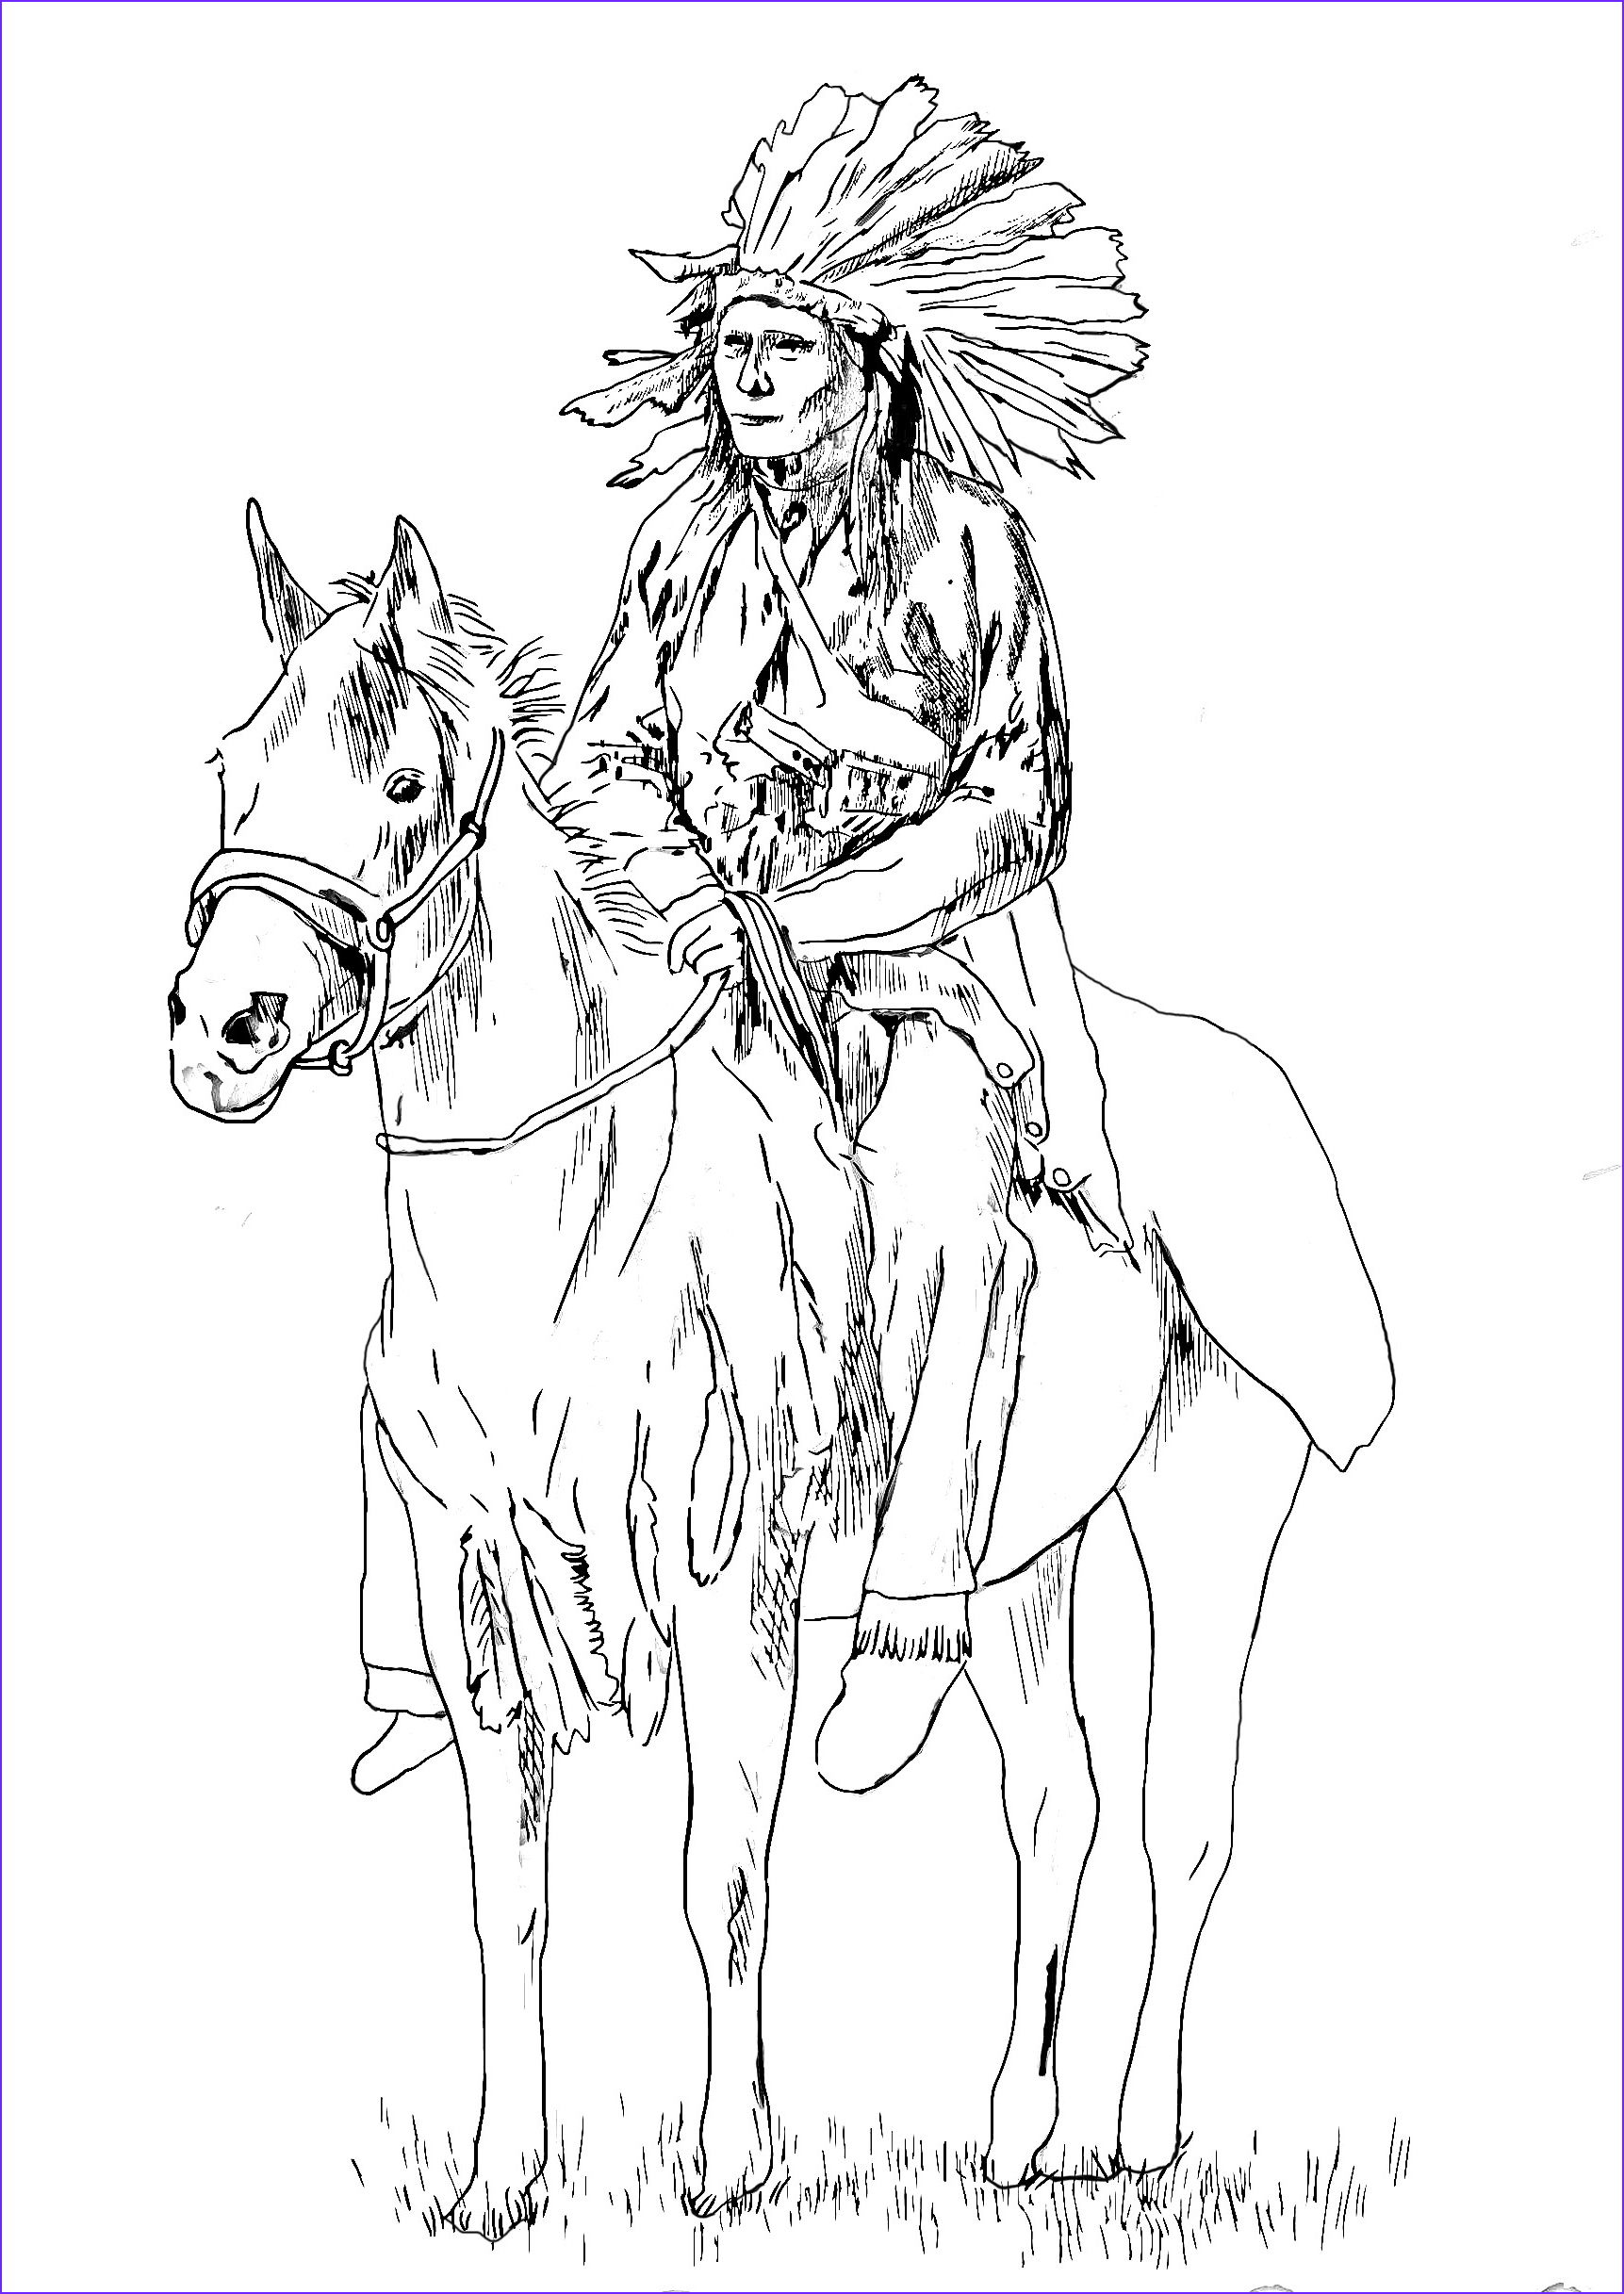 image=native americans coloring adult native american on his horse 1